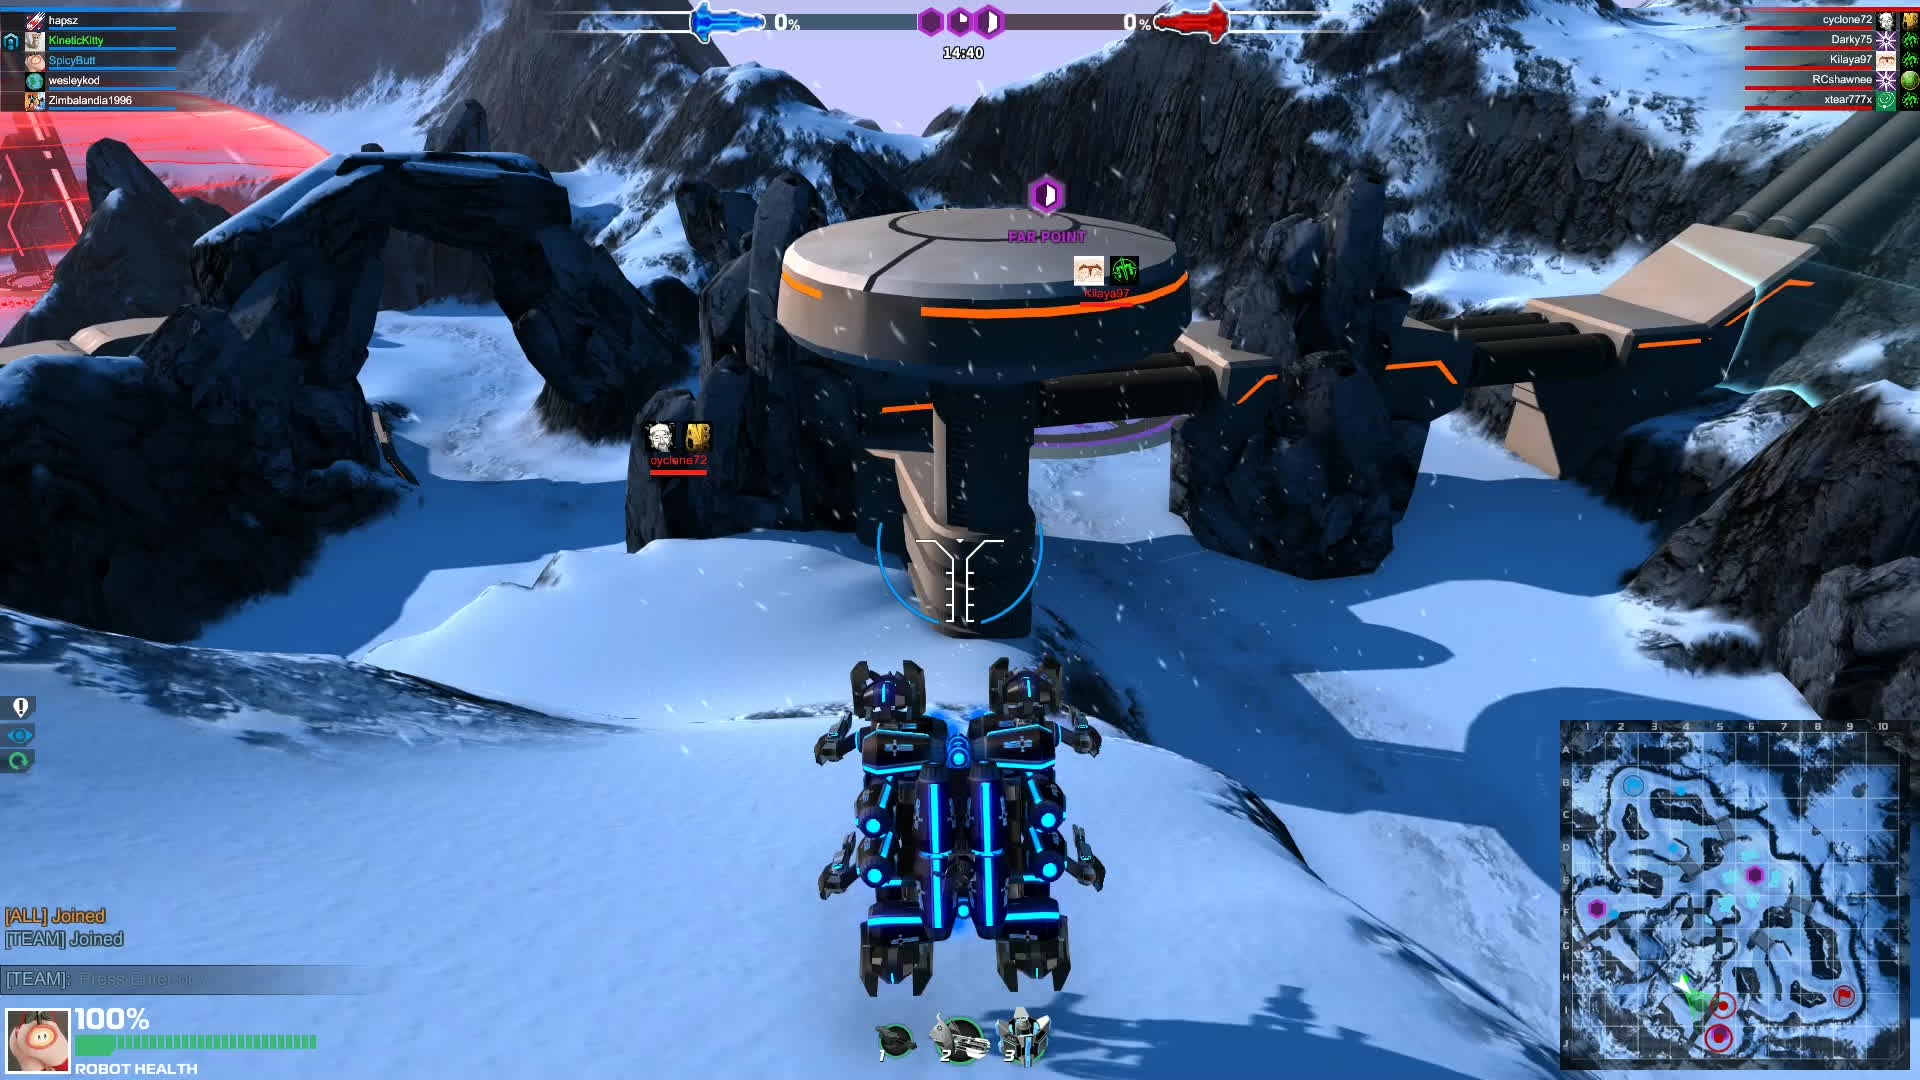 robocraft, How to instantly steal a point from 3 people GIFs